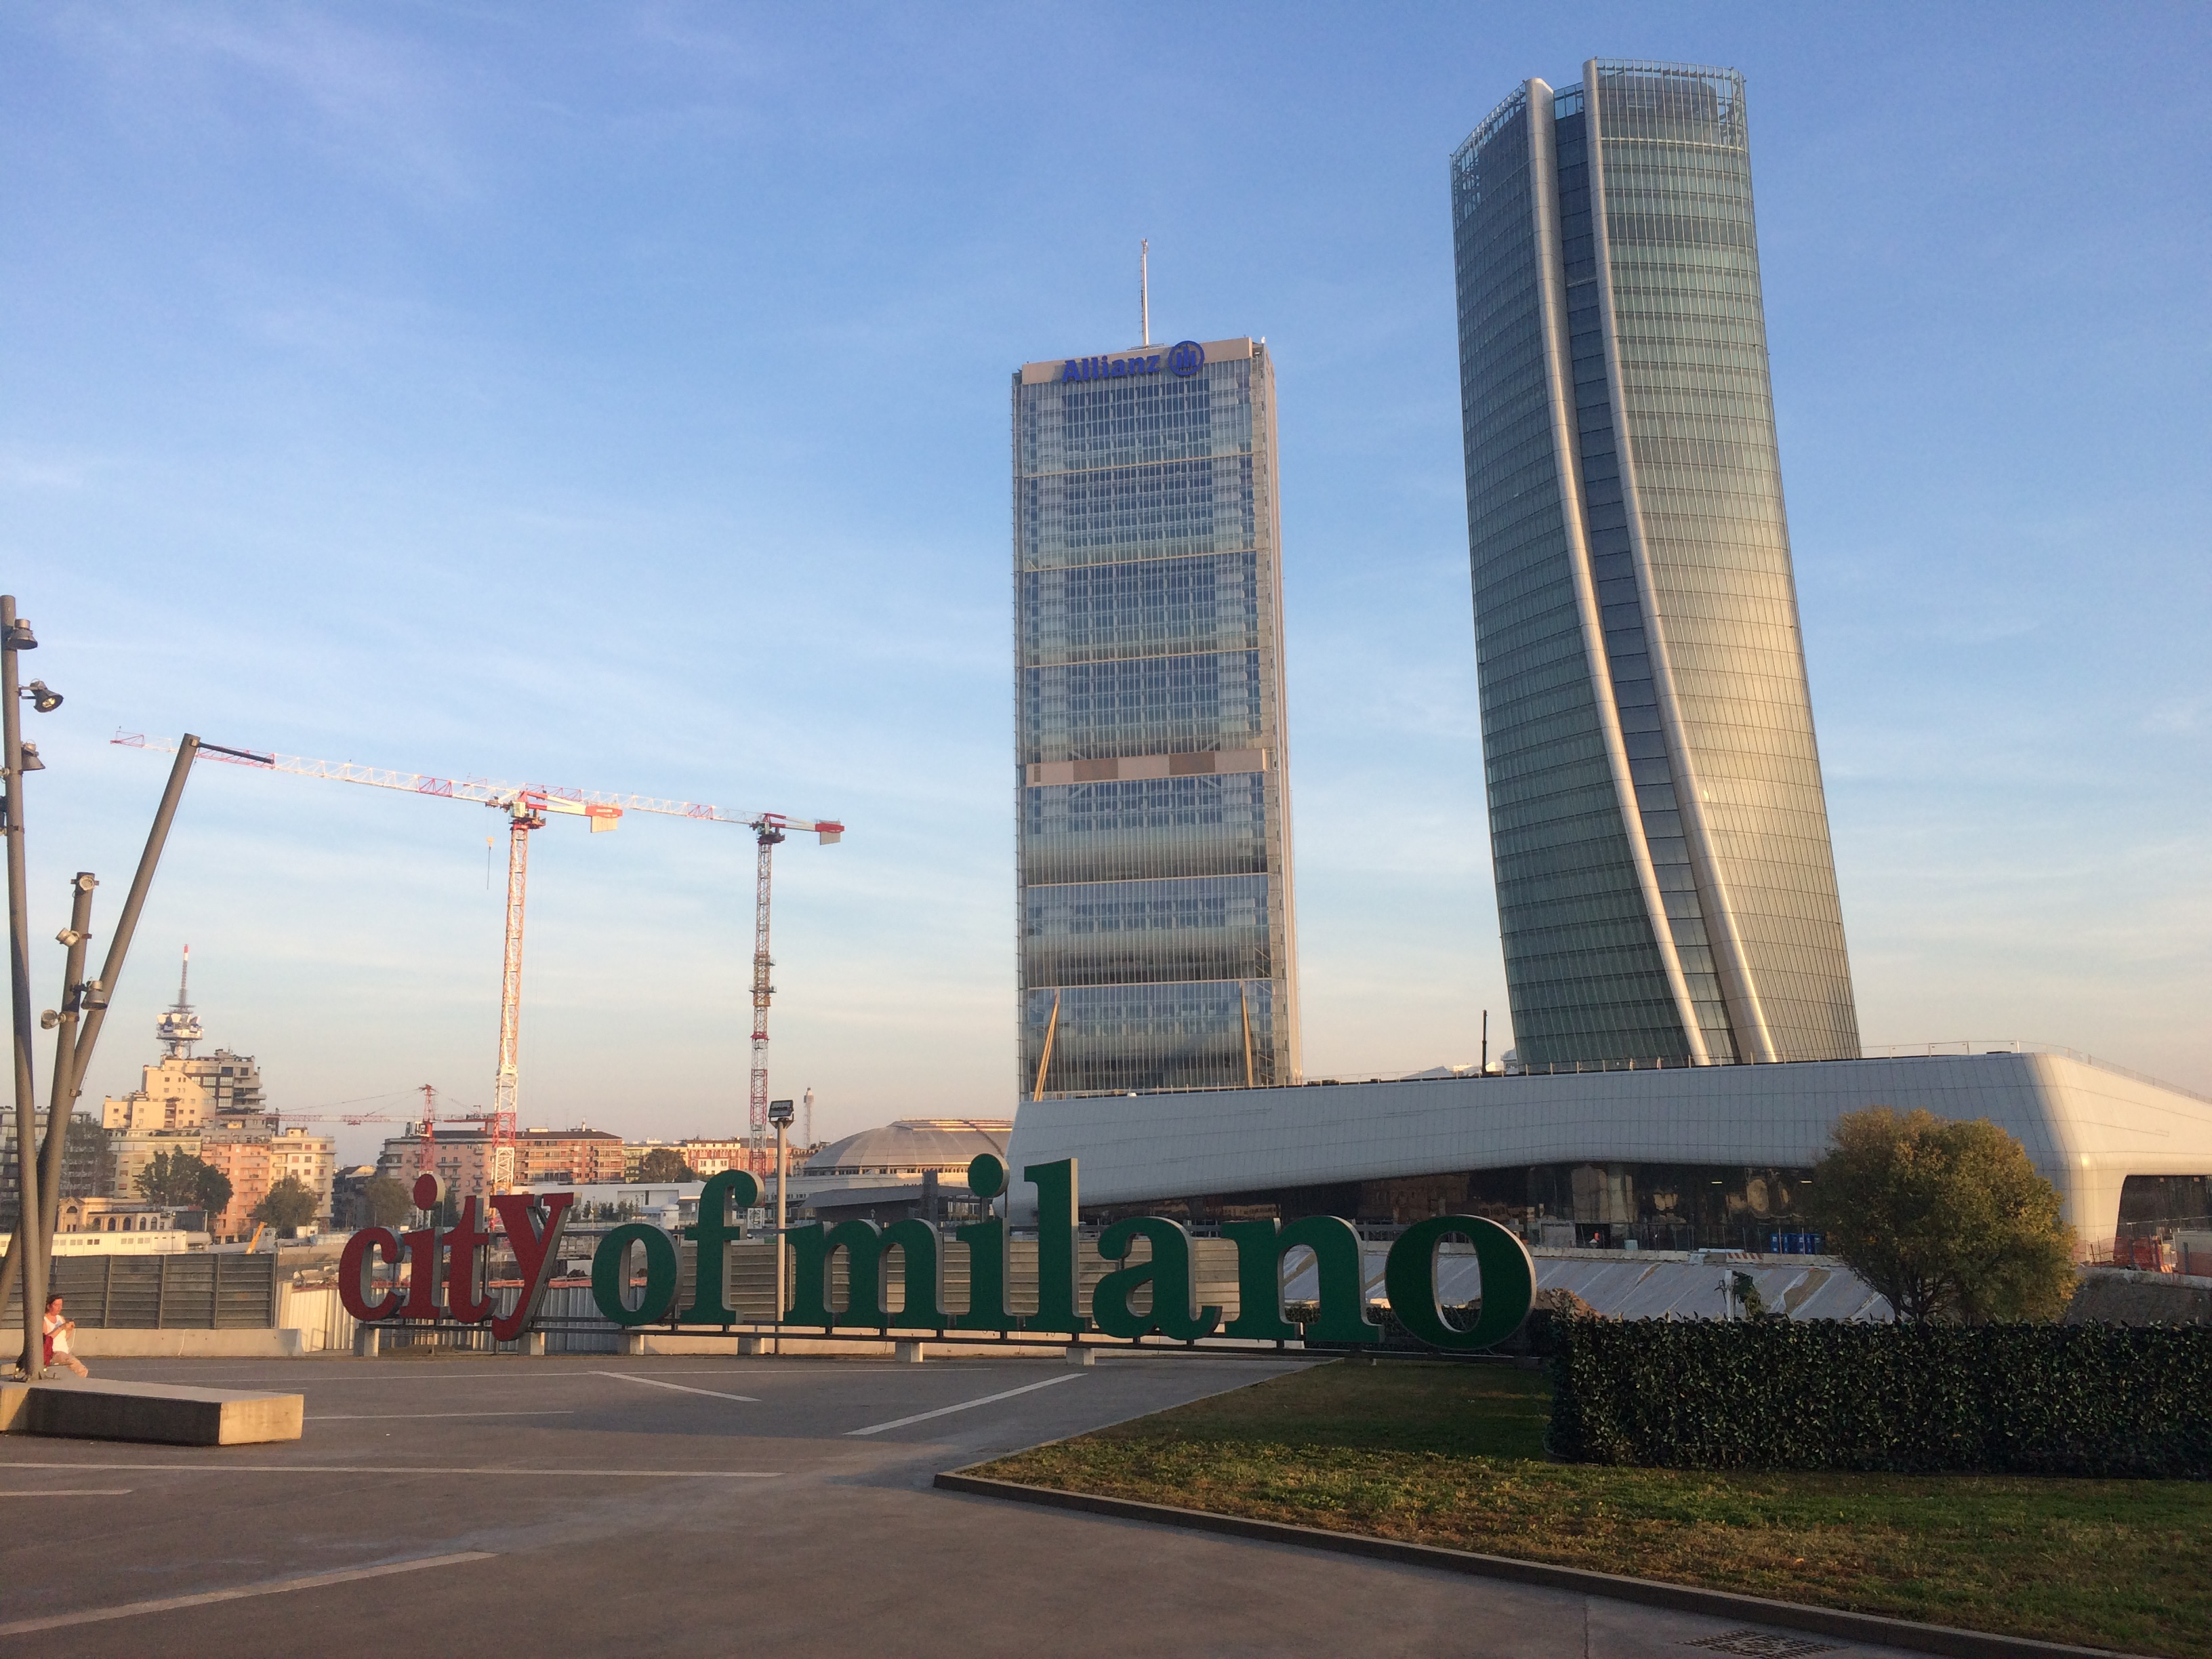 Milan Congress Center